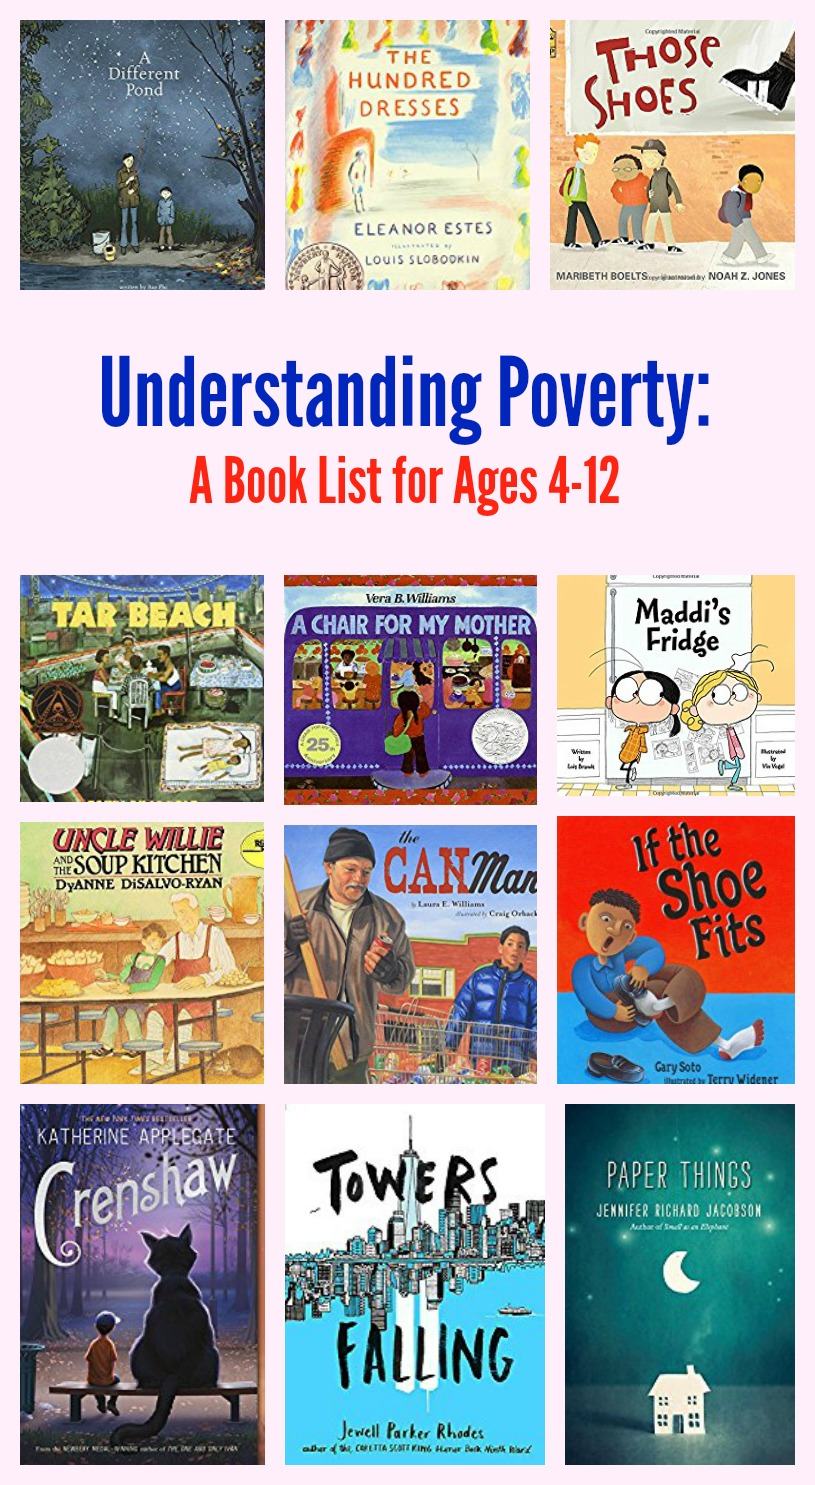 Understanding Poverty: A Book List for Ages 4-12